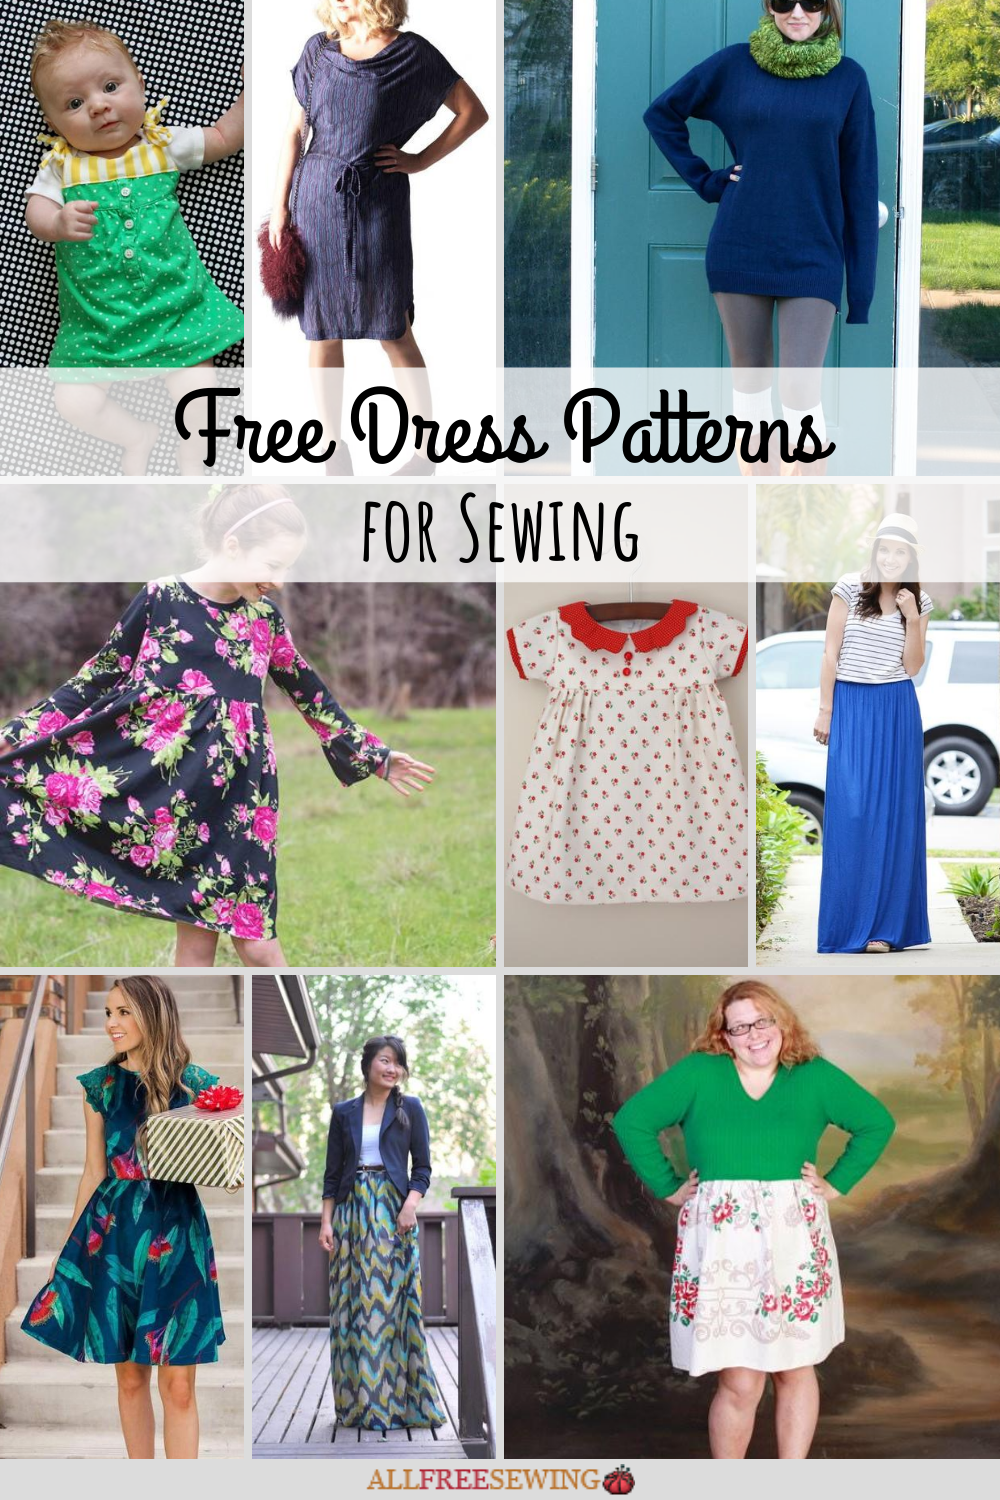 75 Free Dress Patterns To Sew For Women Girls Allfreesewing Com